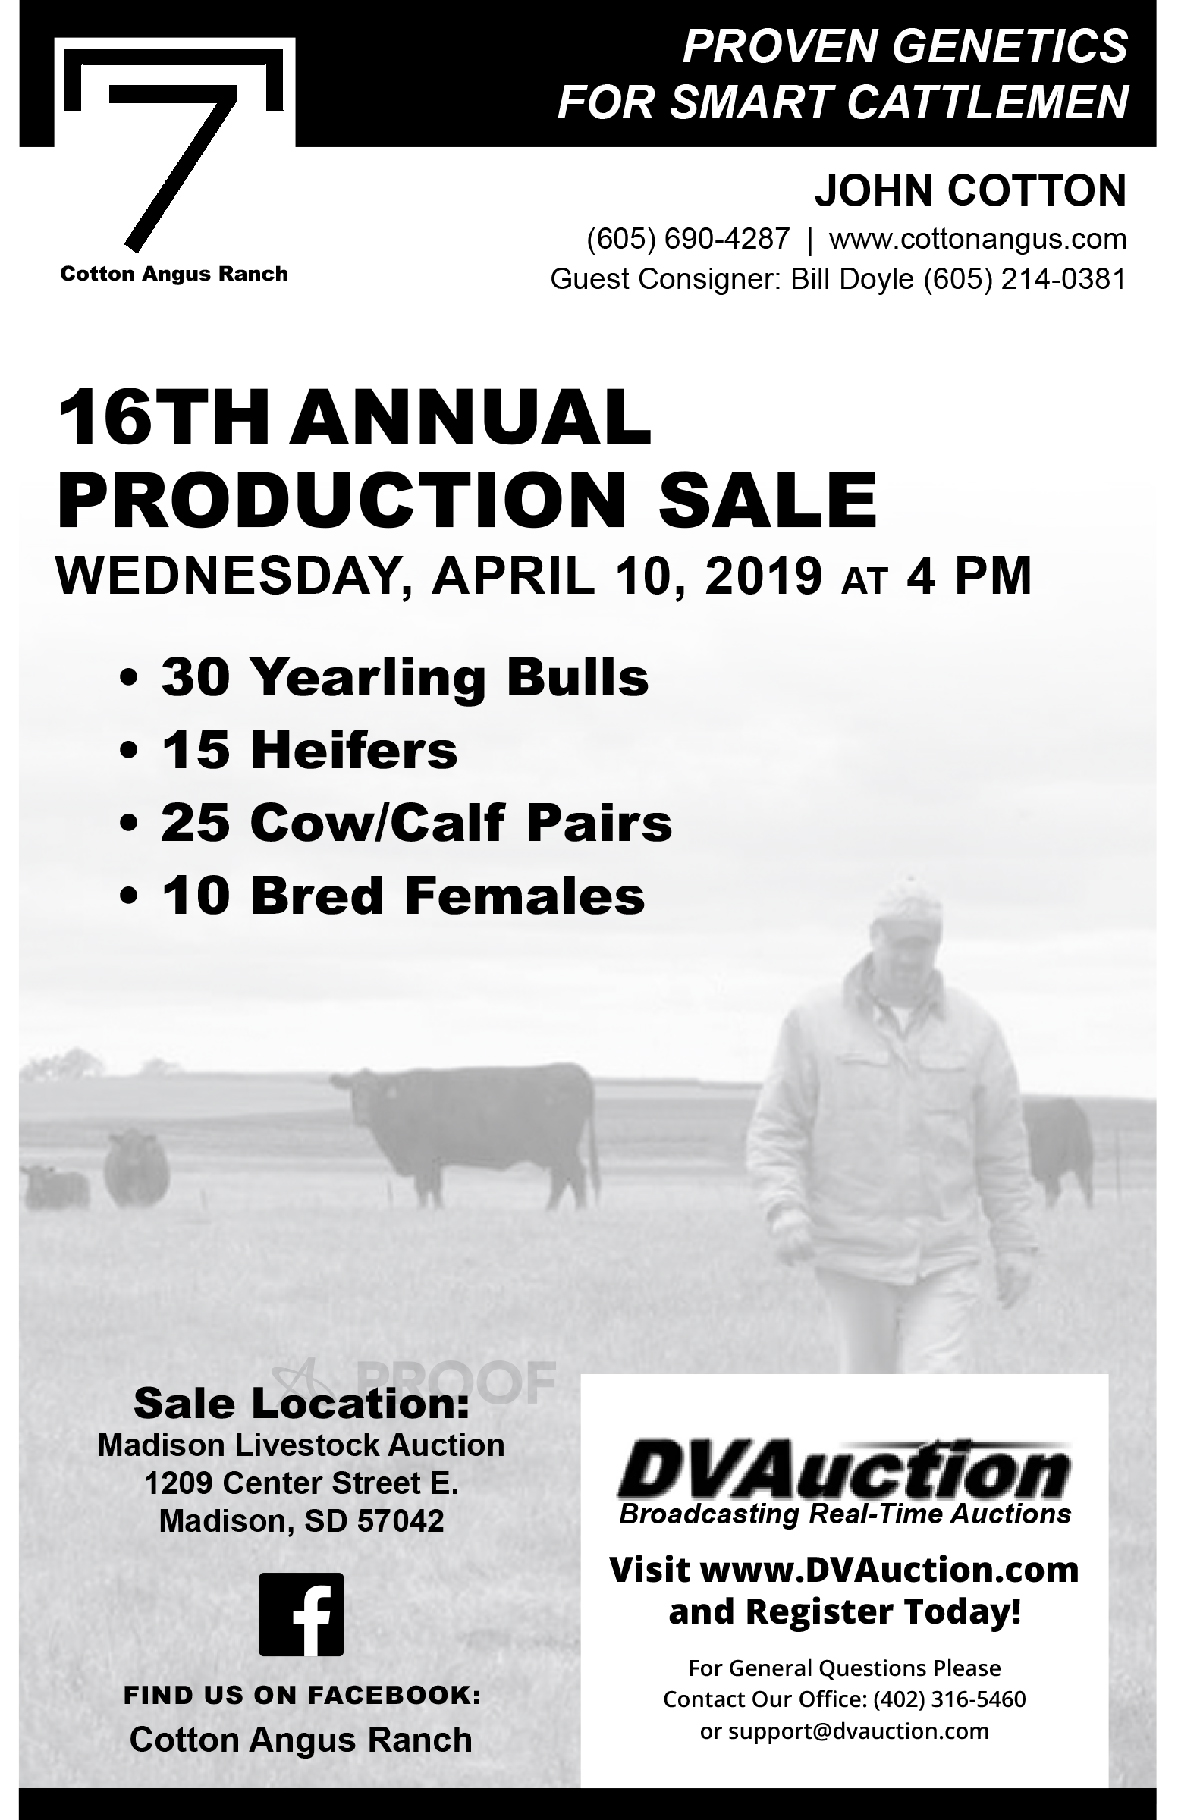 16th Annual Cotton Angus Production Sale